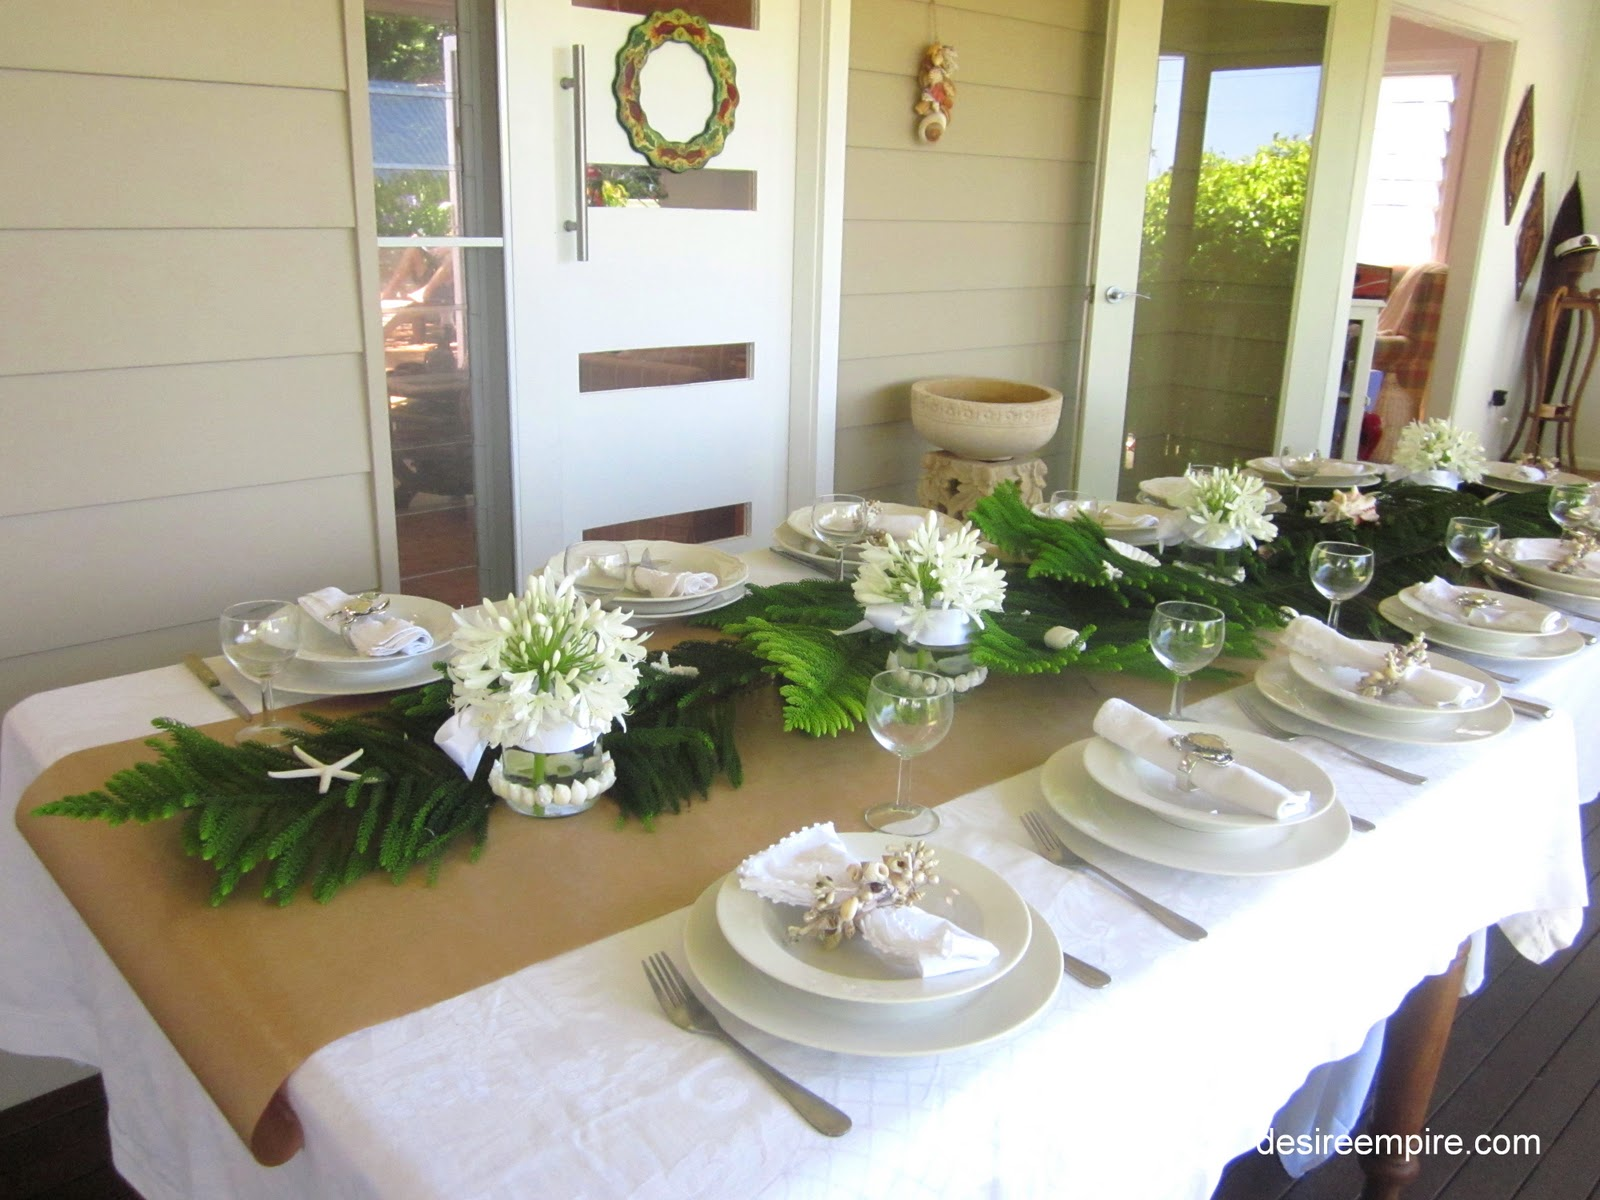 Coastal table in white and on an ikea budget desire empire for Australian decoration ideas